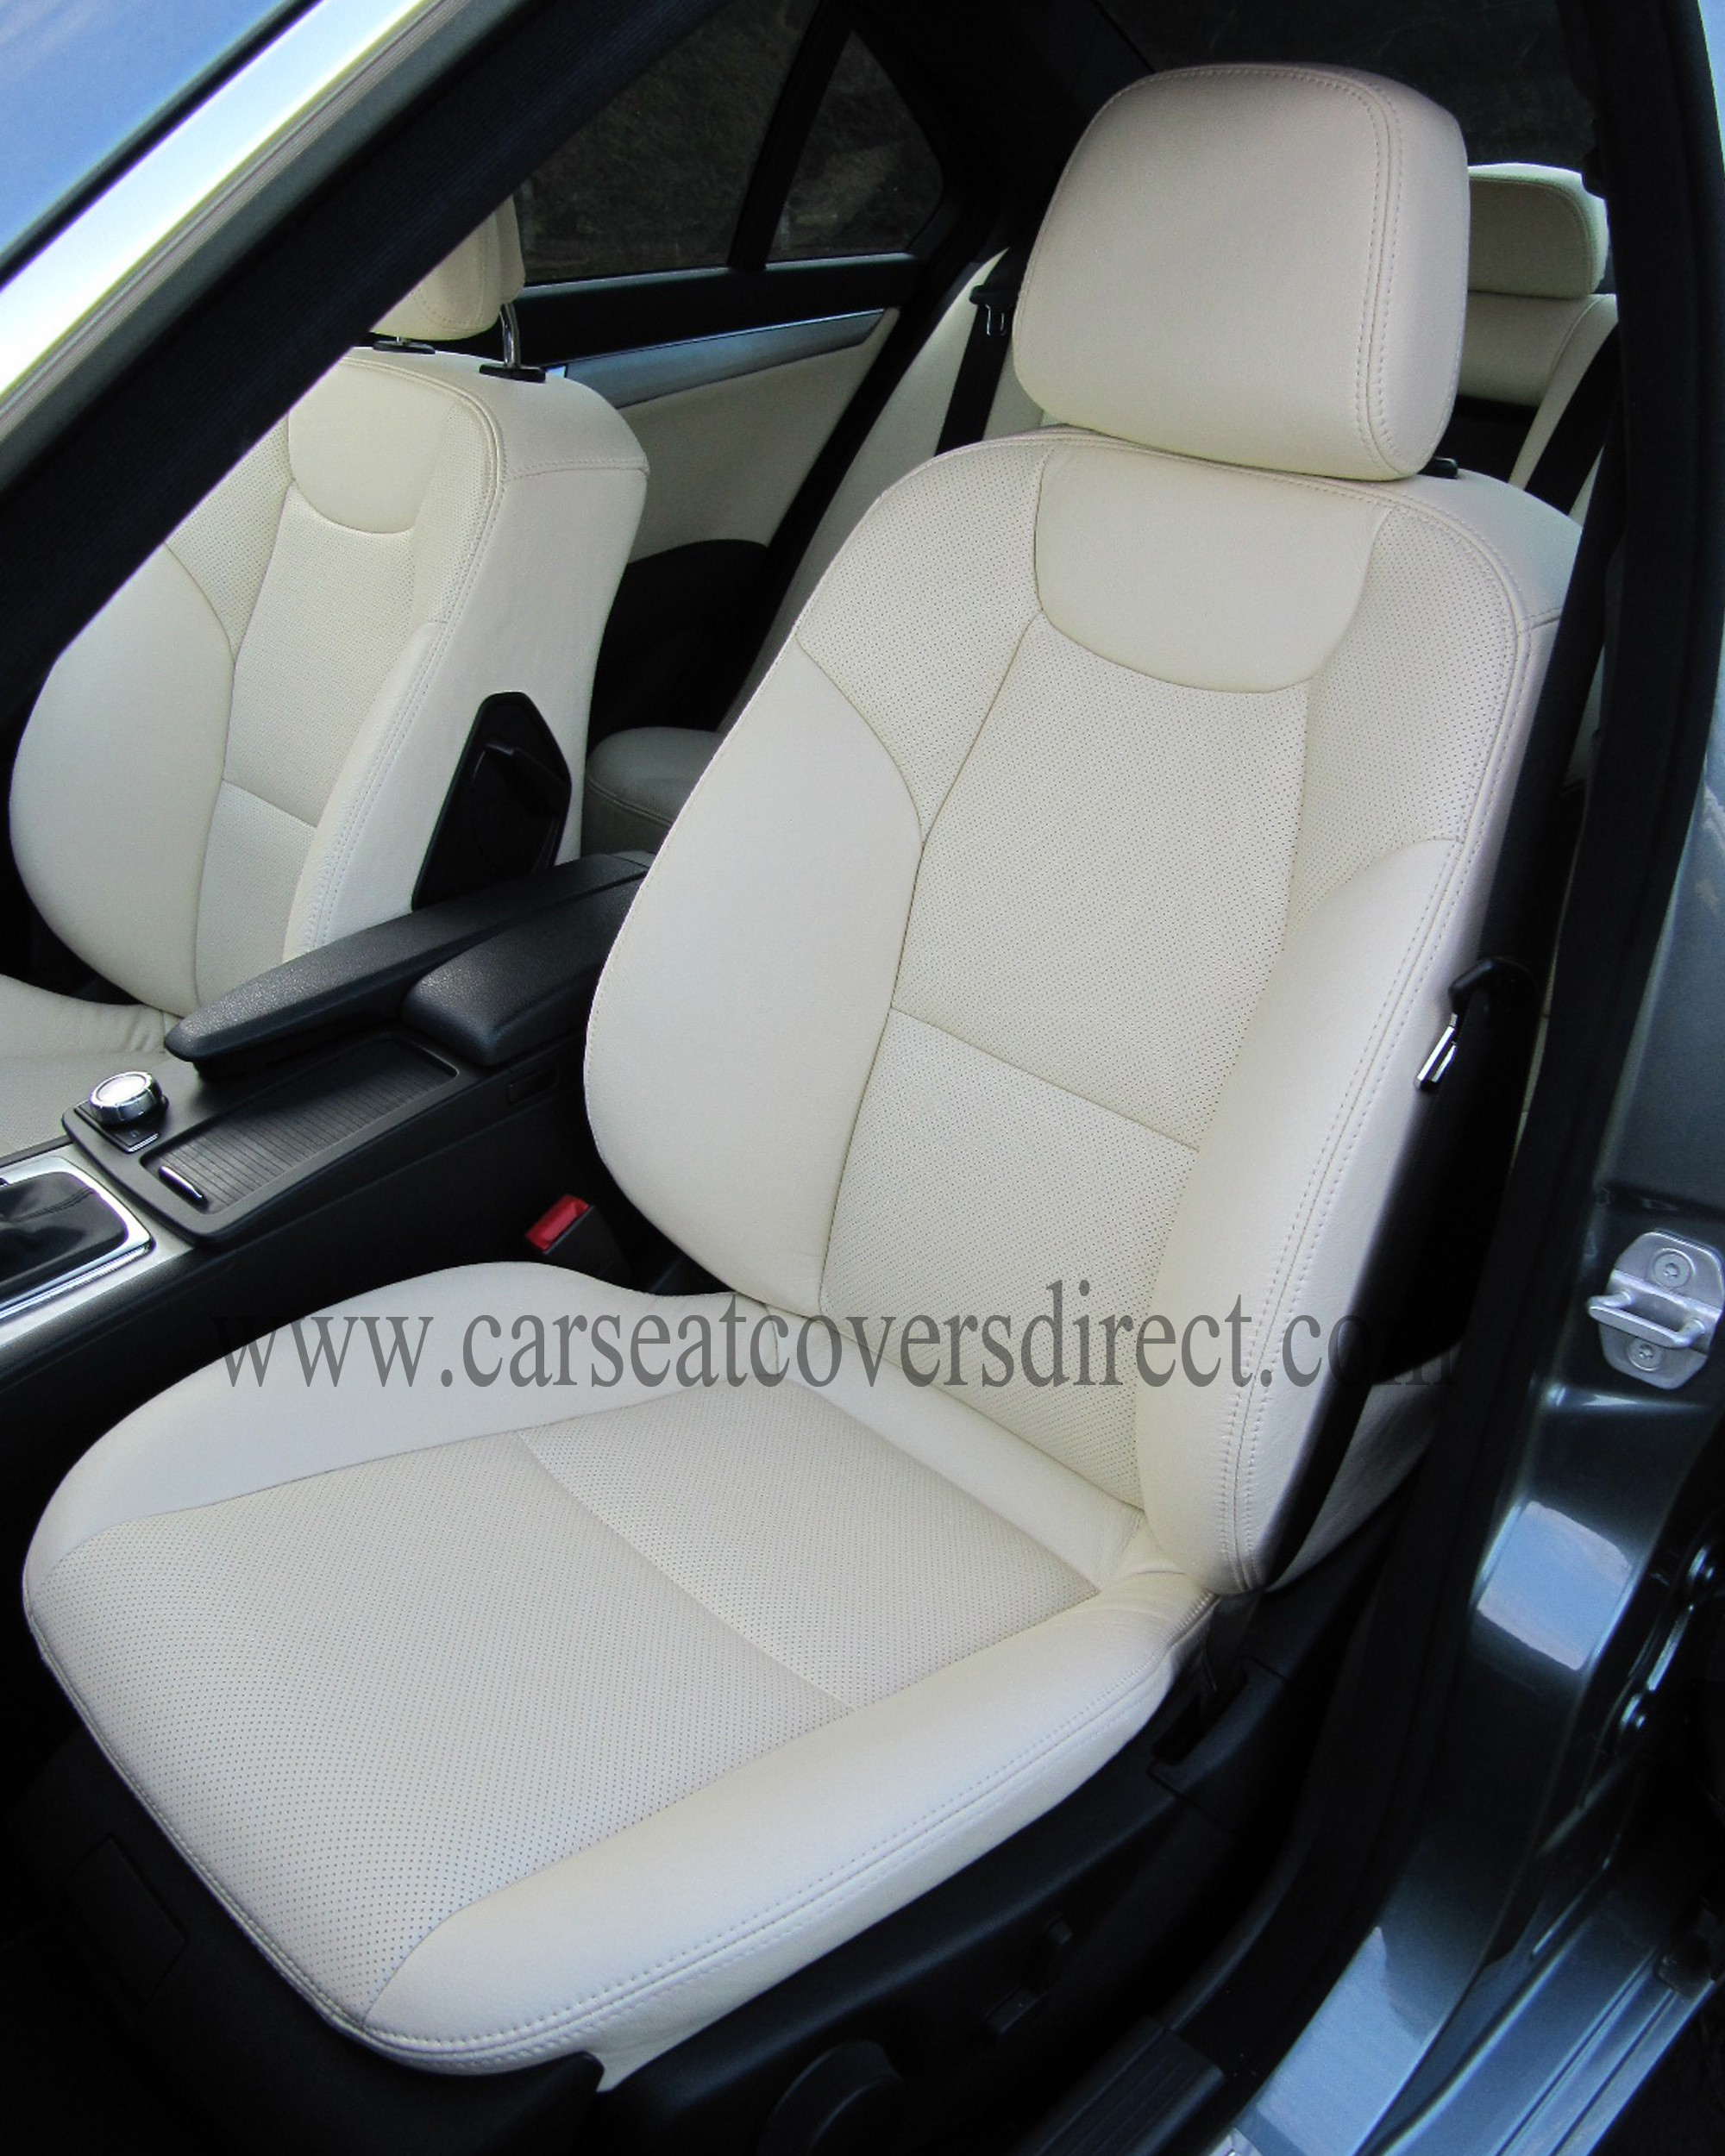 MERCEDES C-CLASS W204 LEATHER RETRIM Car Seat Covers Direct - Tailored To Your Choice